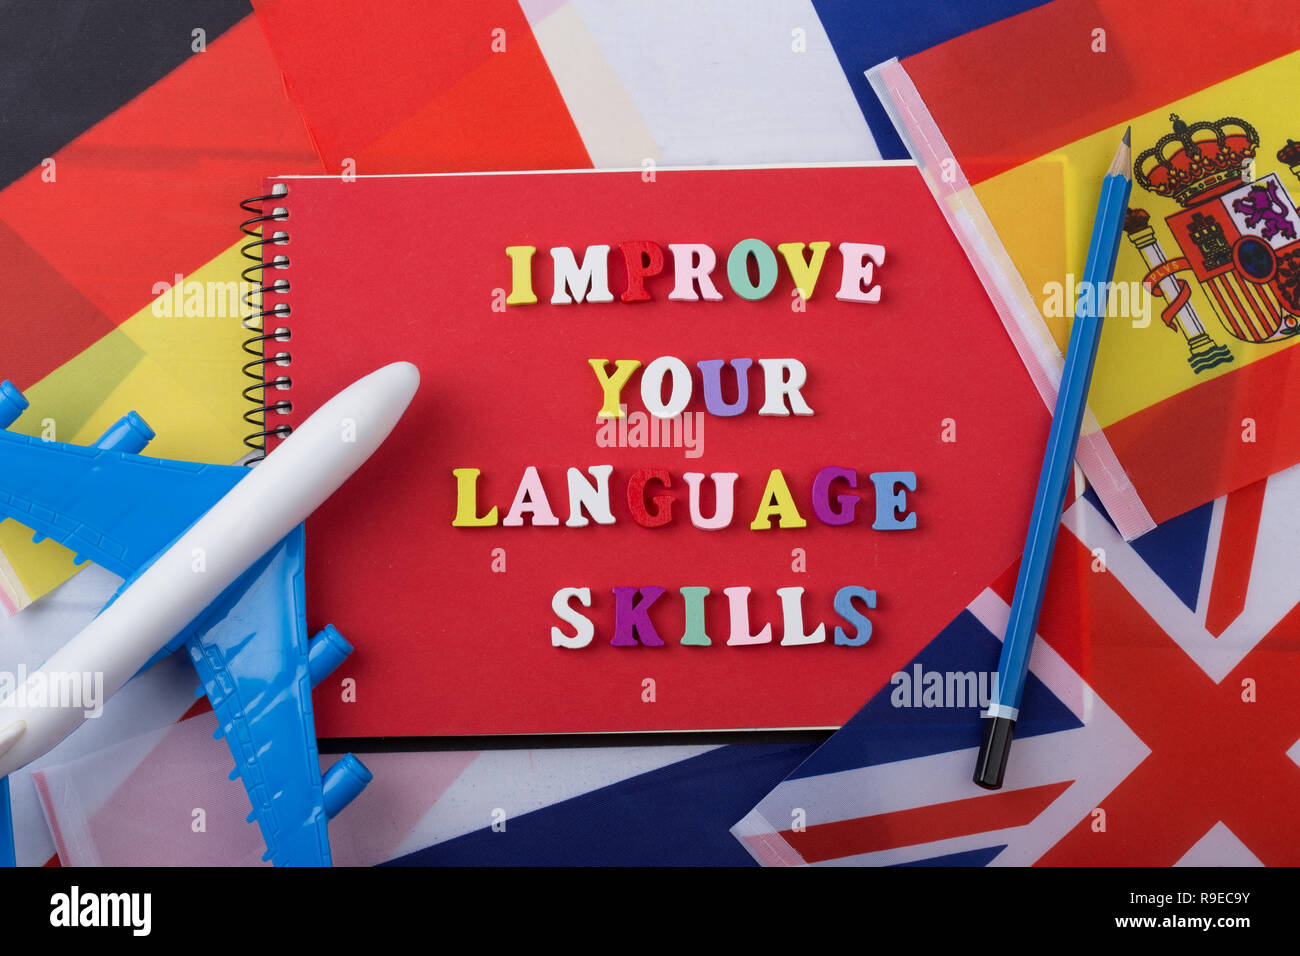 Learning languages concept - red notepad and colorful wooden letters with text 'Improve your language skills', flags, model airplane, pencil - Stock Image